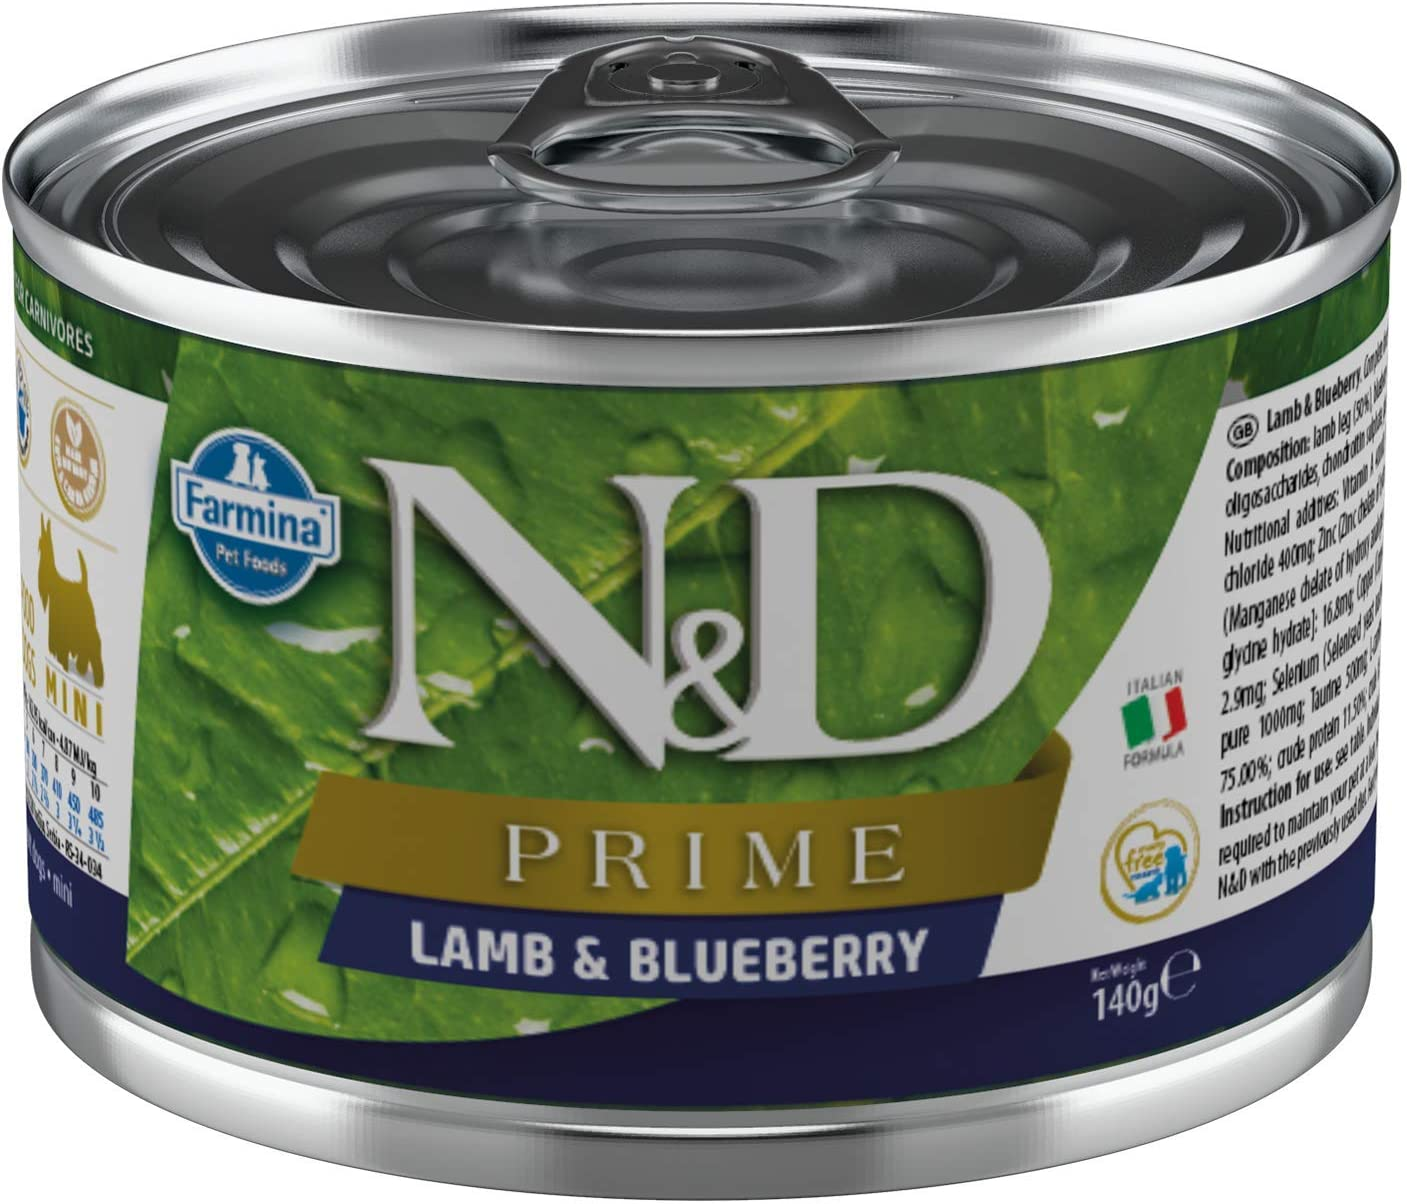 Farmina N&D Prime Lamb and Blueberry Canned Adult Mini Dog Food 4.9 Ounces, case of 6